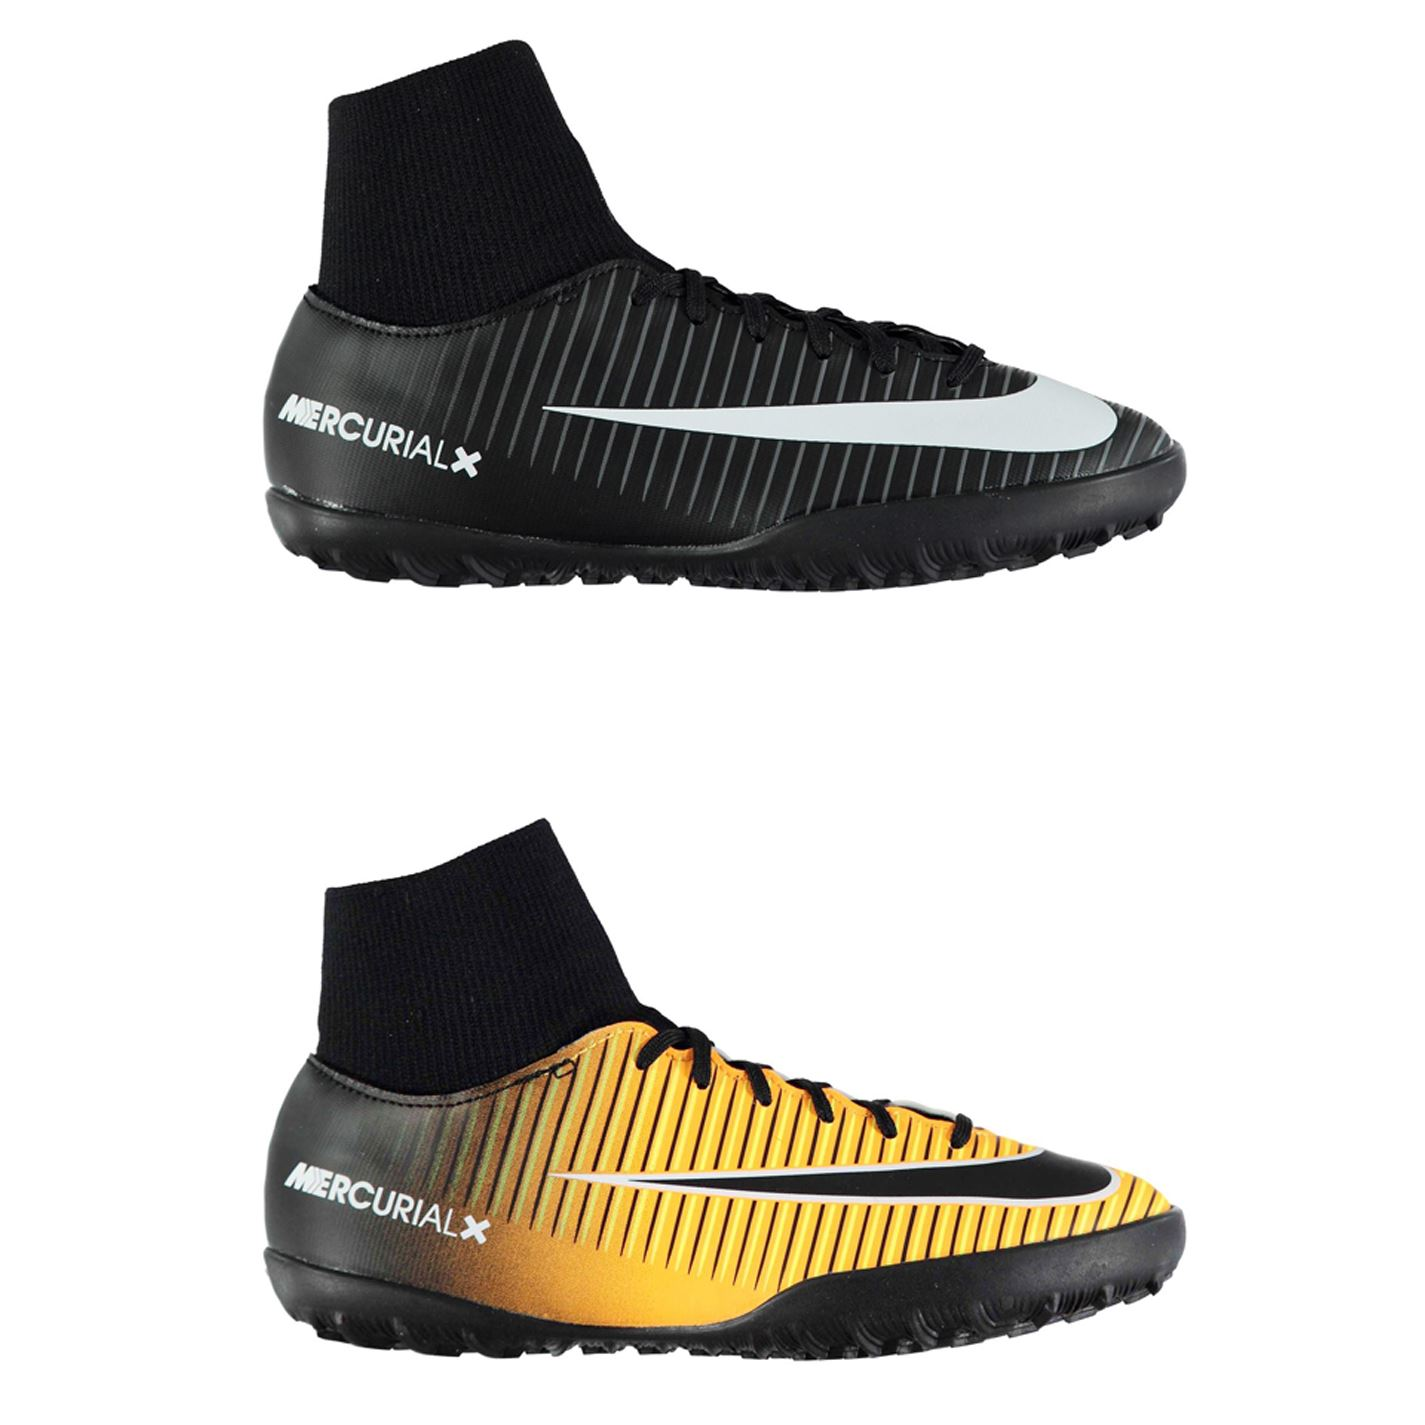 wholesale dealer bf7e0 b6a17 Details about Nike Mercurial Victory DF Astro Turf Football Trainers  Juniors Soccer Shoes